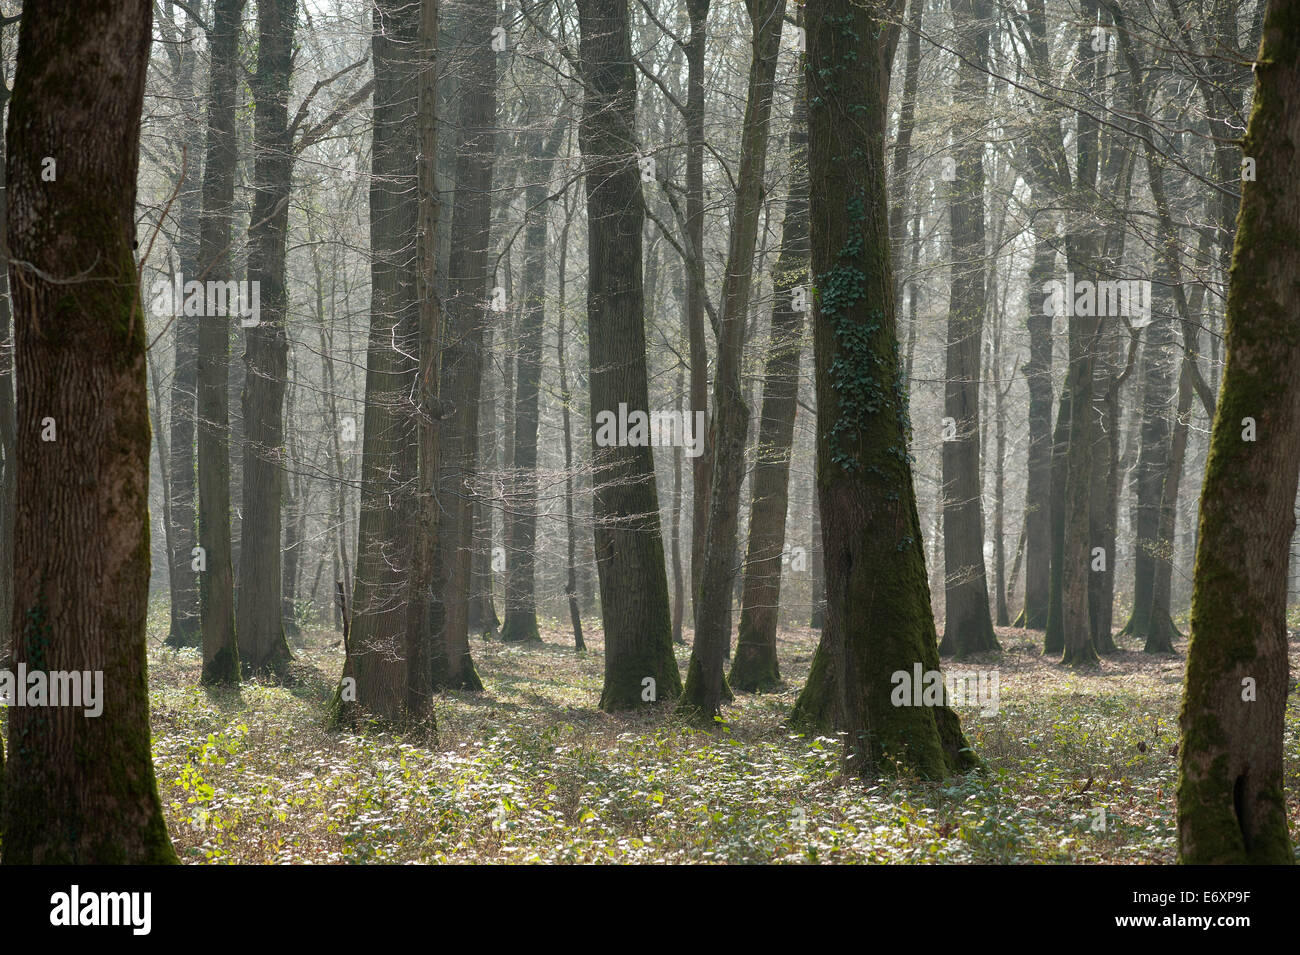 Battle of Belleau Wood WW1,north of Chateau-Thierry only 60 miles from Paris, France. March 2014 - Stock Image